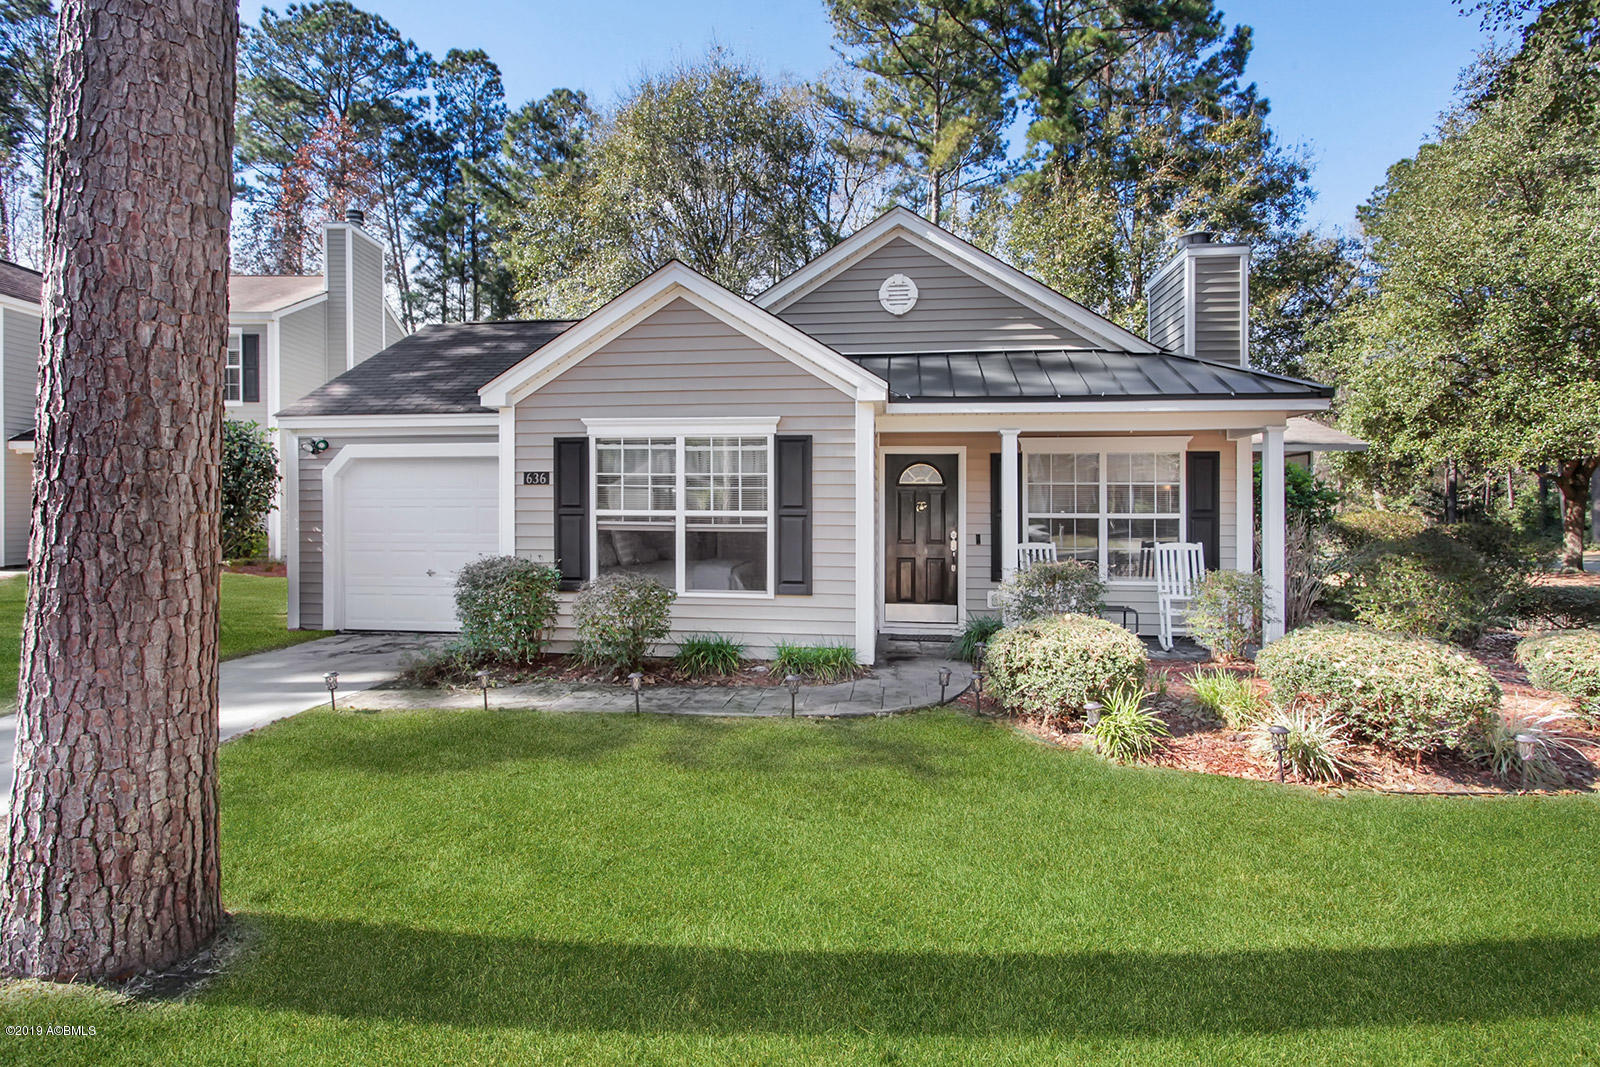 Photo of 636 Coopers Lane, Bluffton, SC 29910